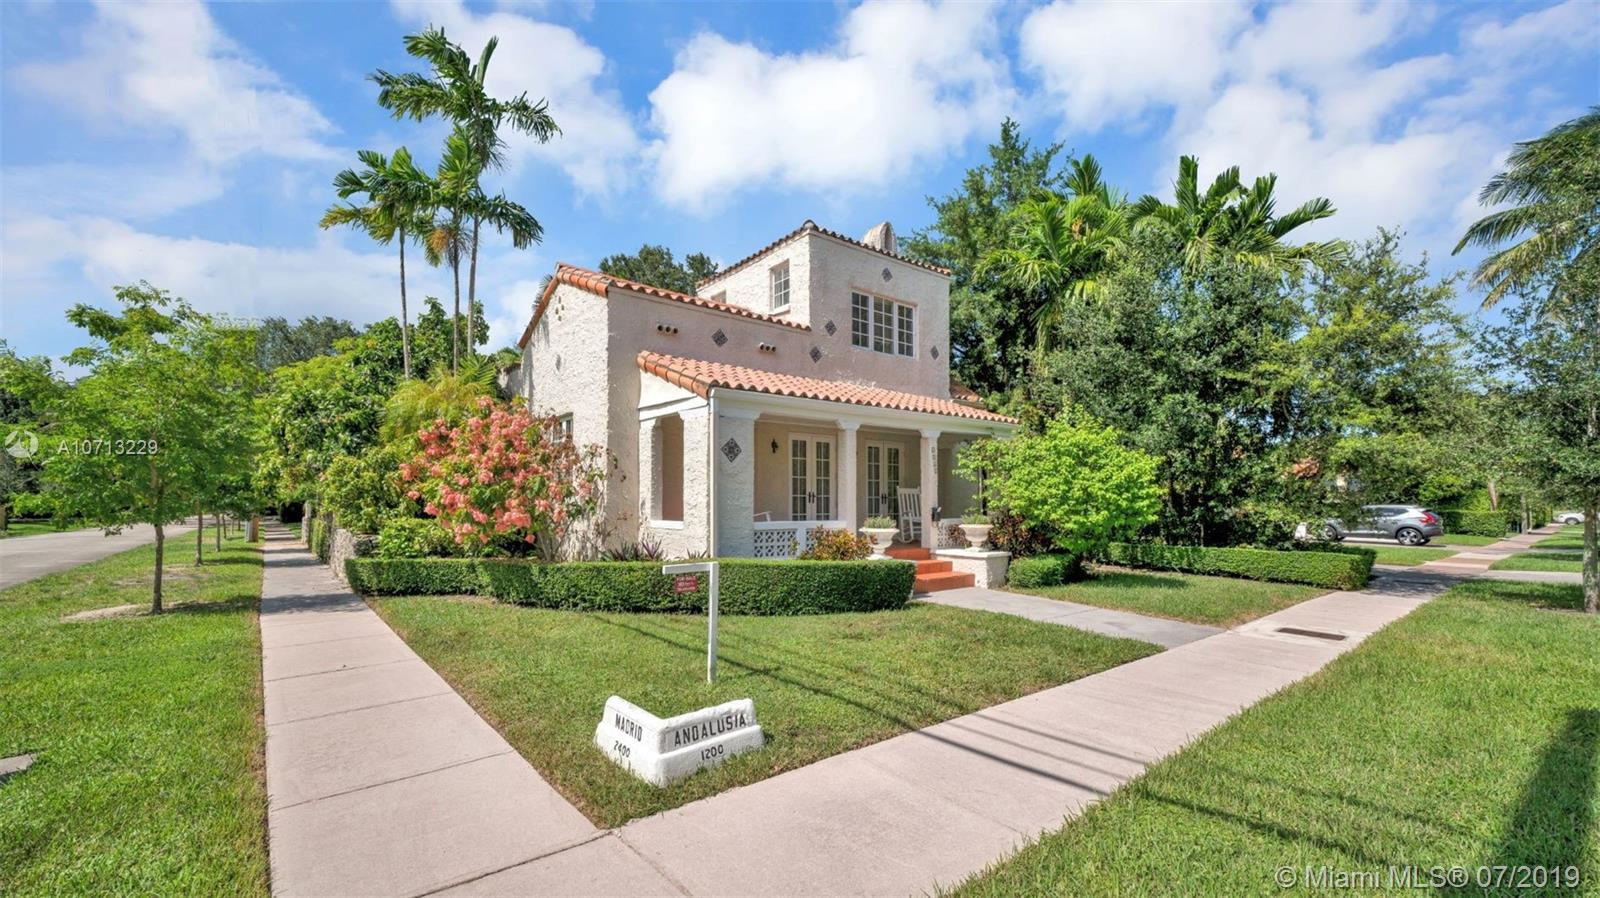 1265  Andalusia Ave  For Sale A10713229, FL